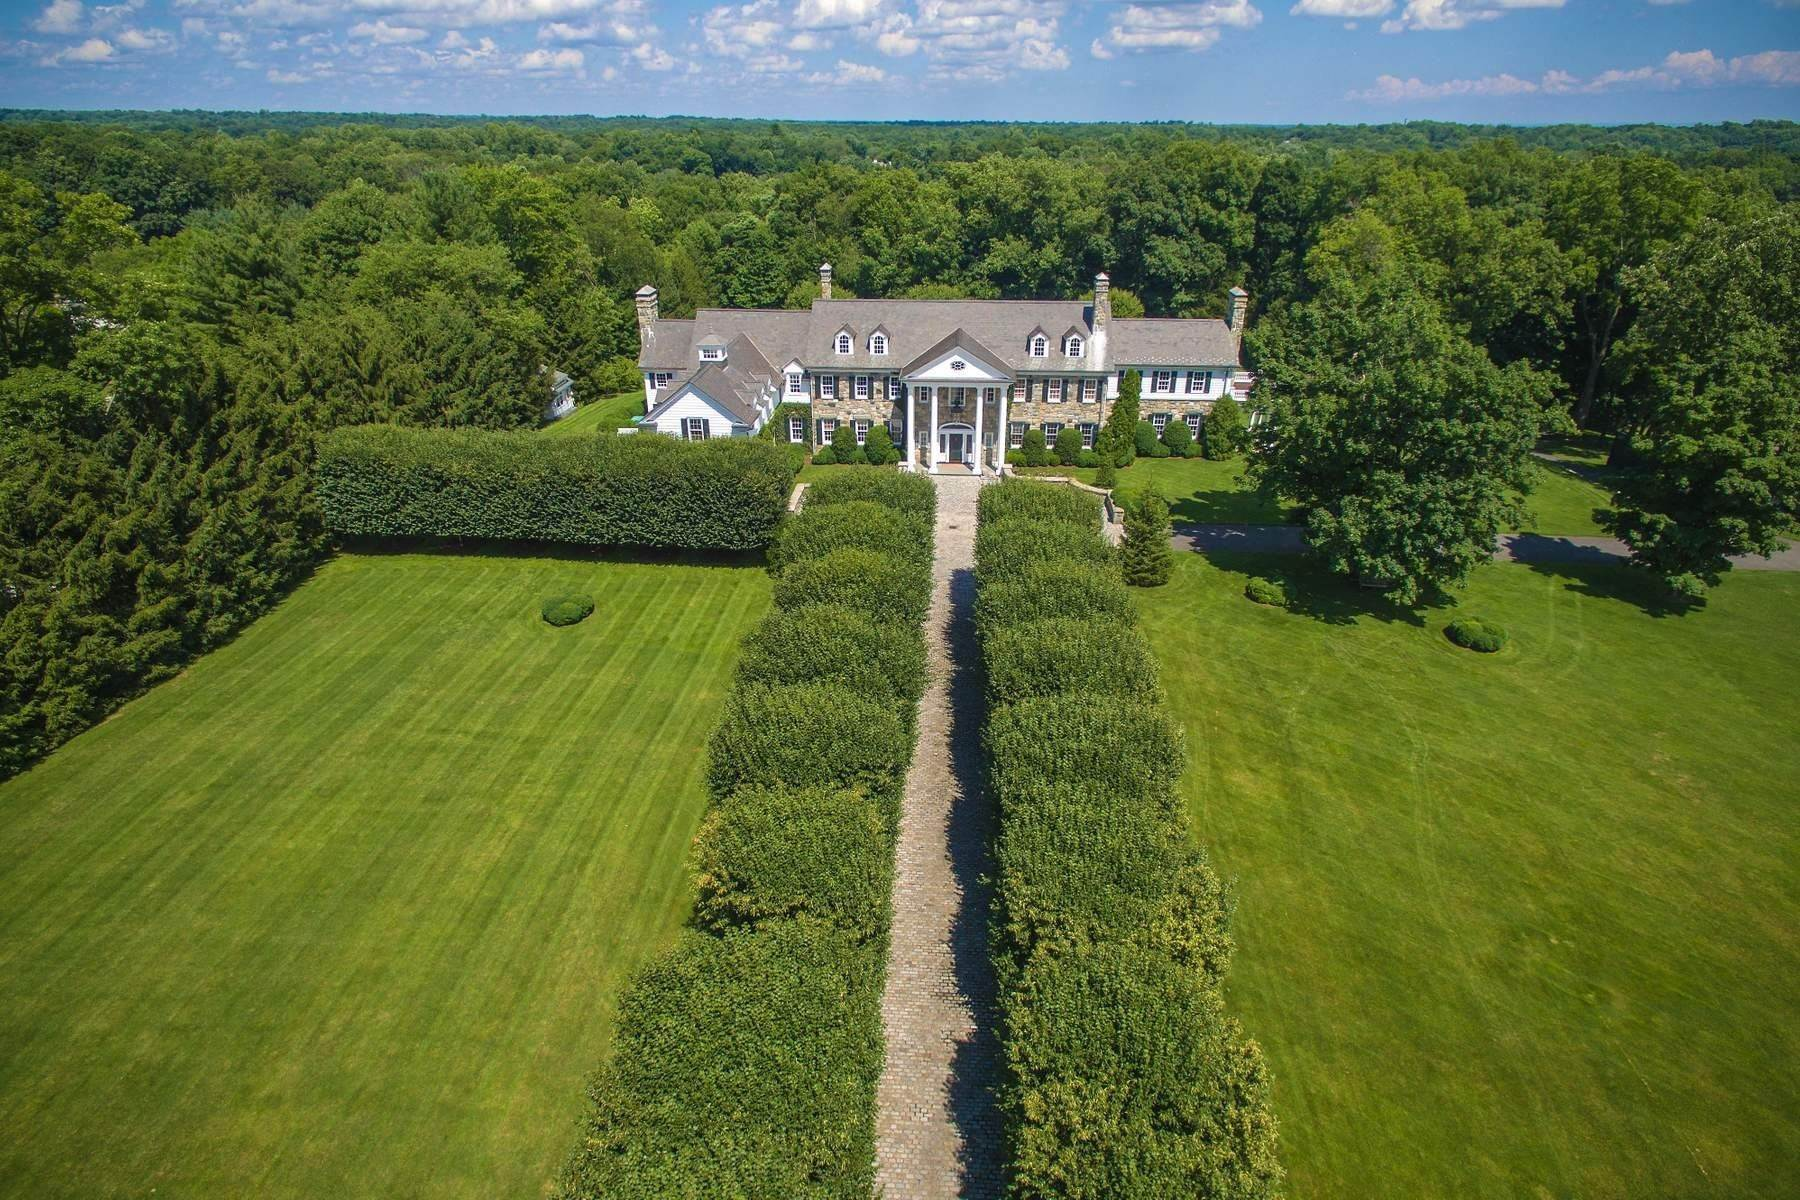 Single Family Homes for Sale at Stone Hill 435 Round Hill Road Greenwich, Connecticut 06831 United States